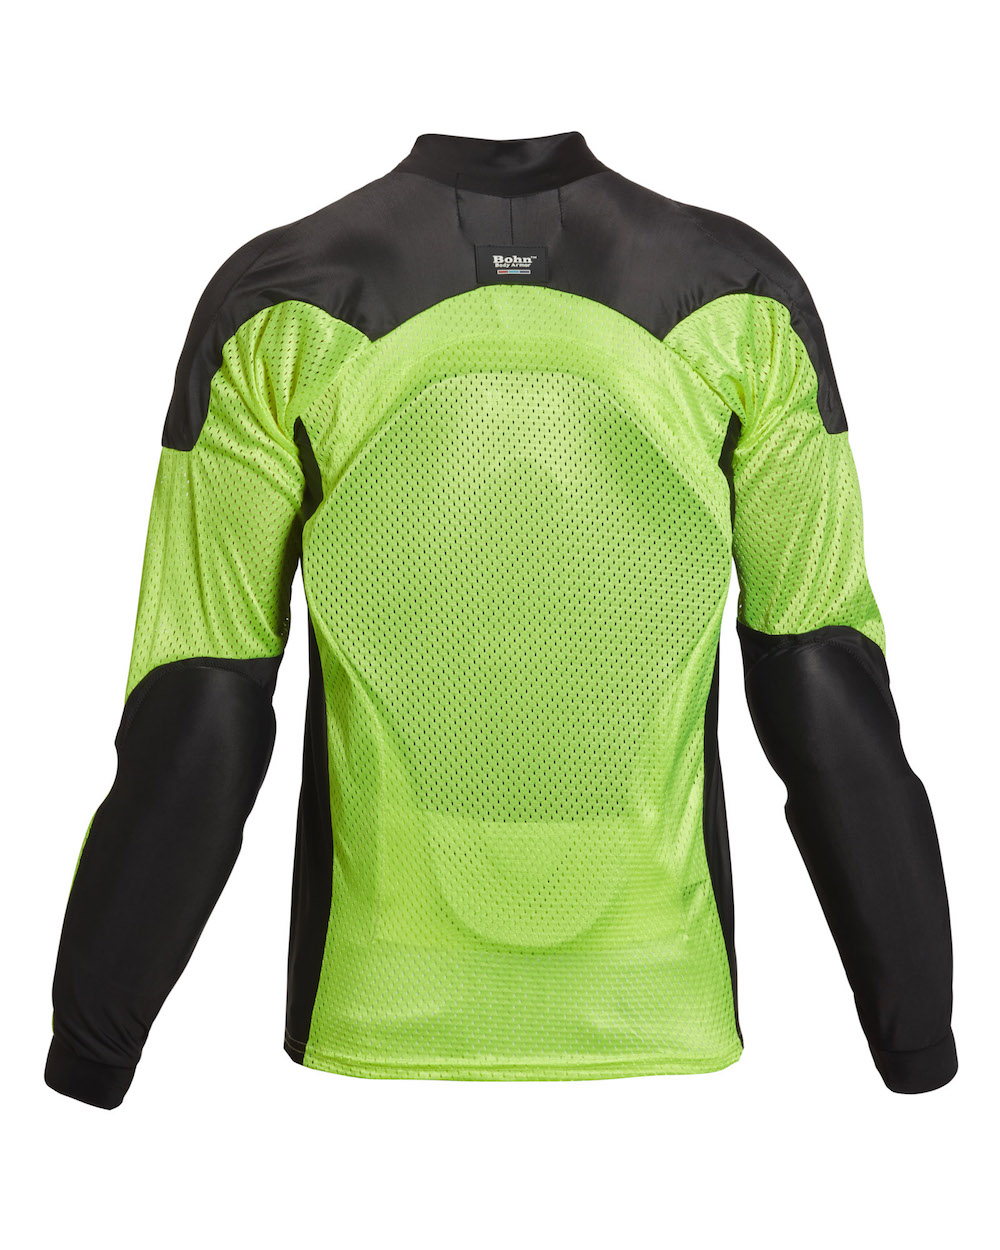 All season airtex armored riding shirt hi vis yellow for Motorcycle body armor shirt